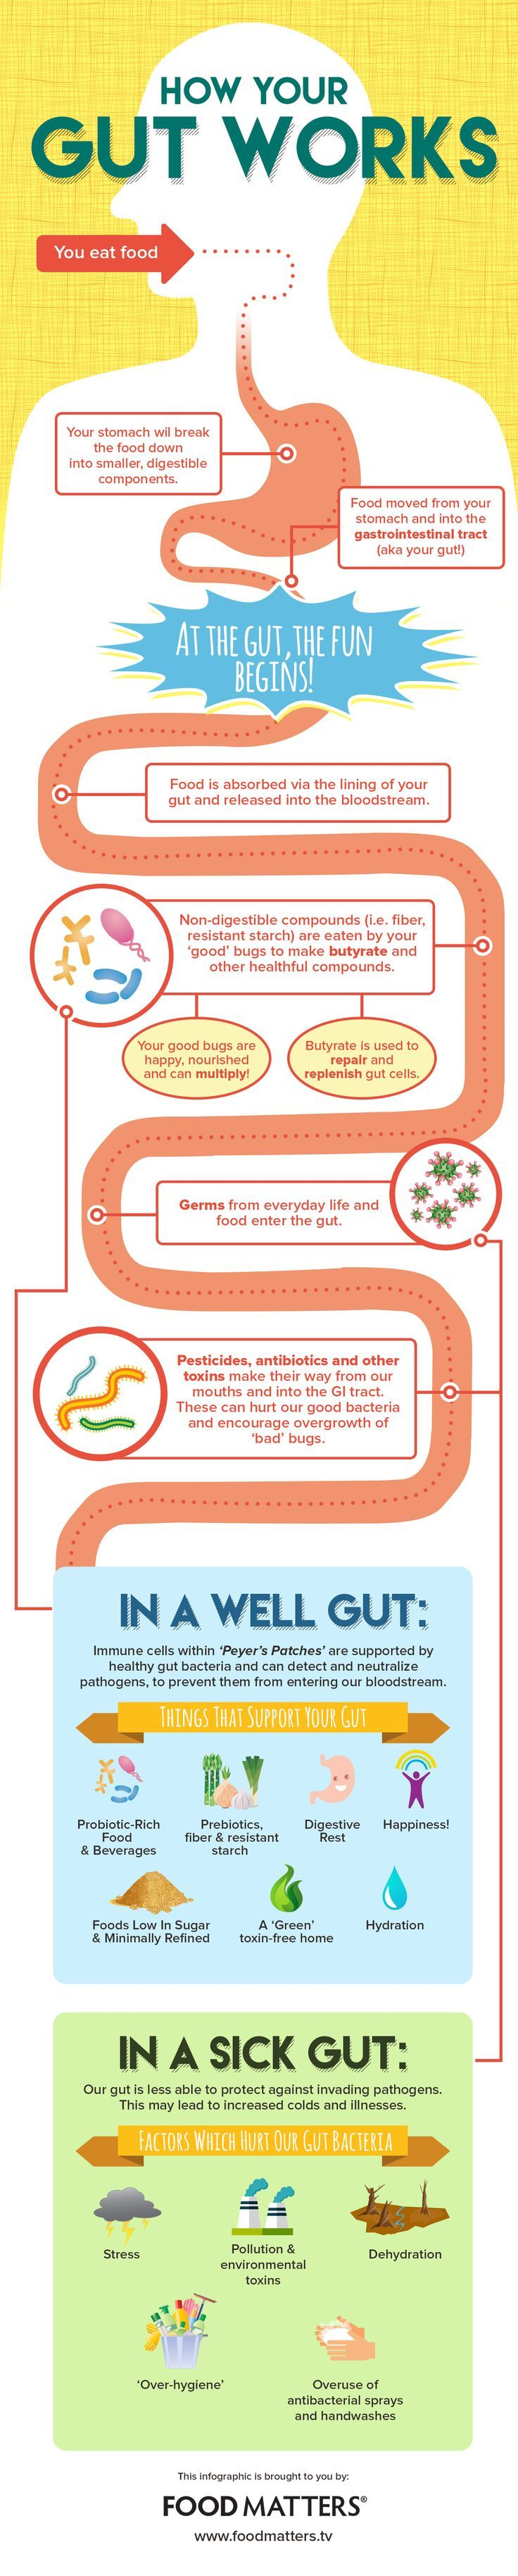 Around 60-80% of your immune system is located in your gut hence a properly functioning digestive system is essential for maintaining good health. Apart from your immune system, the gut is responsible for 90% of your body's neurotransmitters as they help regulate the mood. GI tract problems have been linked